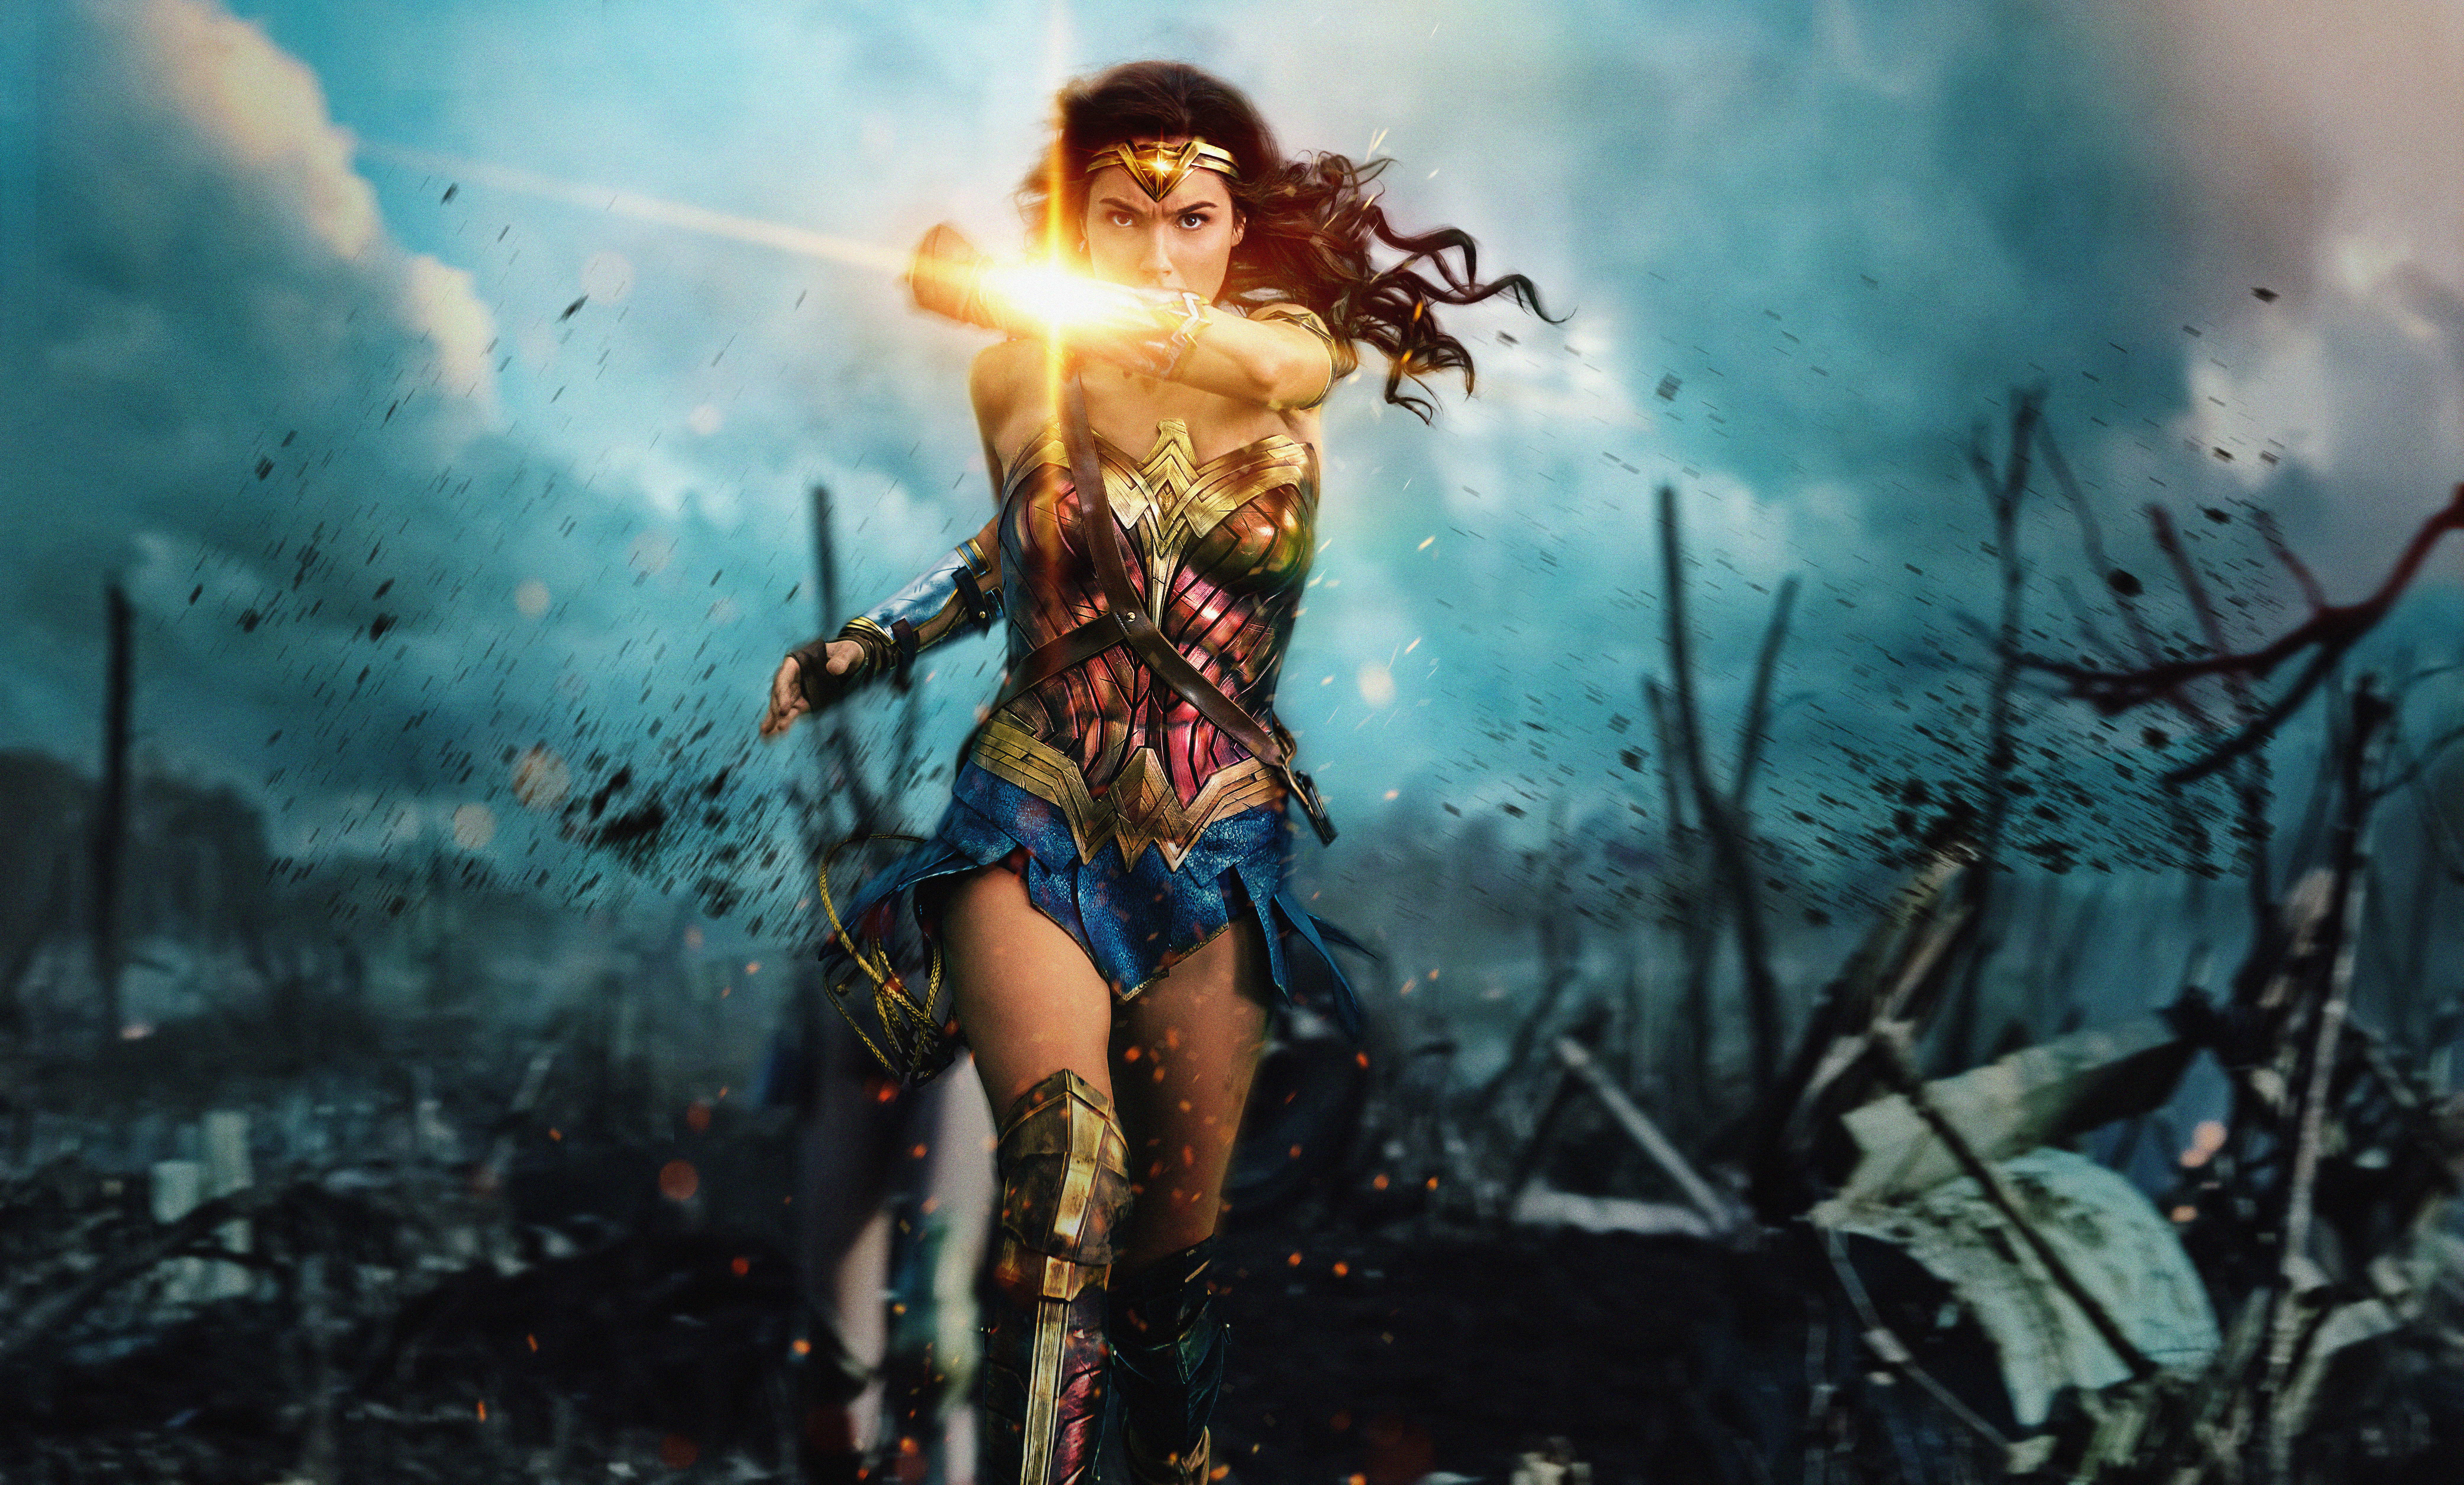 Directed by Patty Jenkins With Gal Gadot Chris Pine Robin Wright Lucy Davis When a pilot crashes and tells of conflict in the outside world Diana an Amazonian